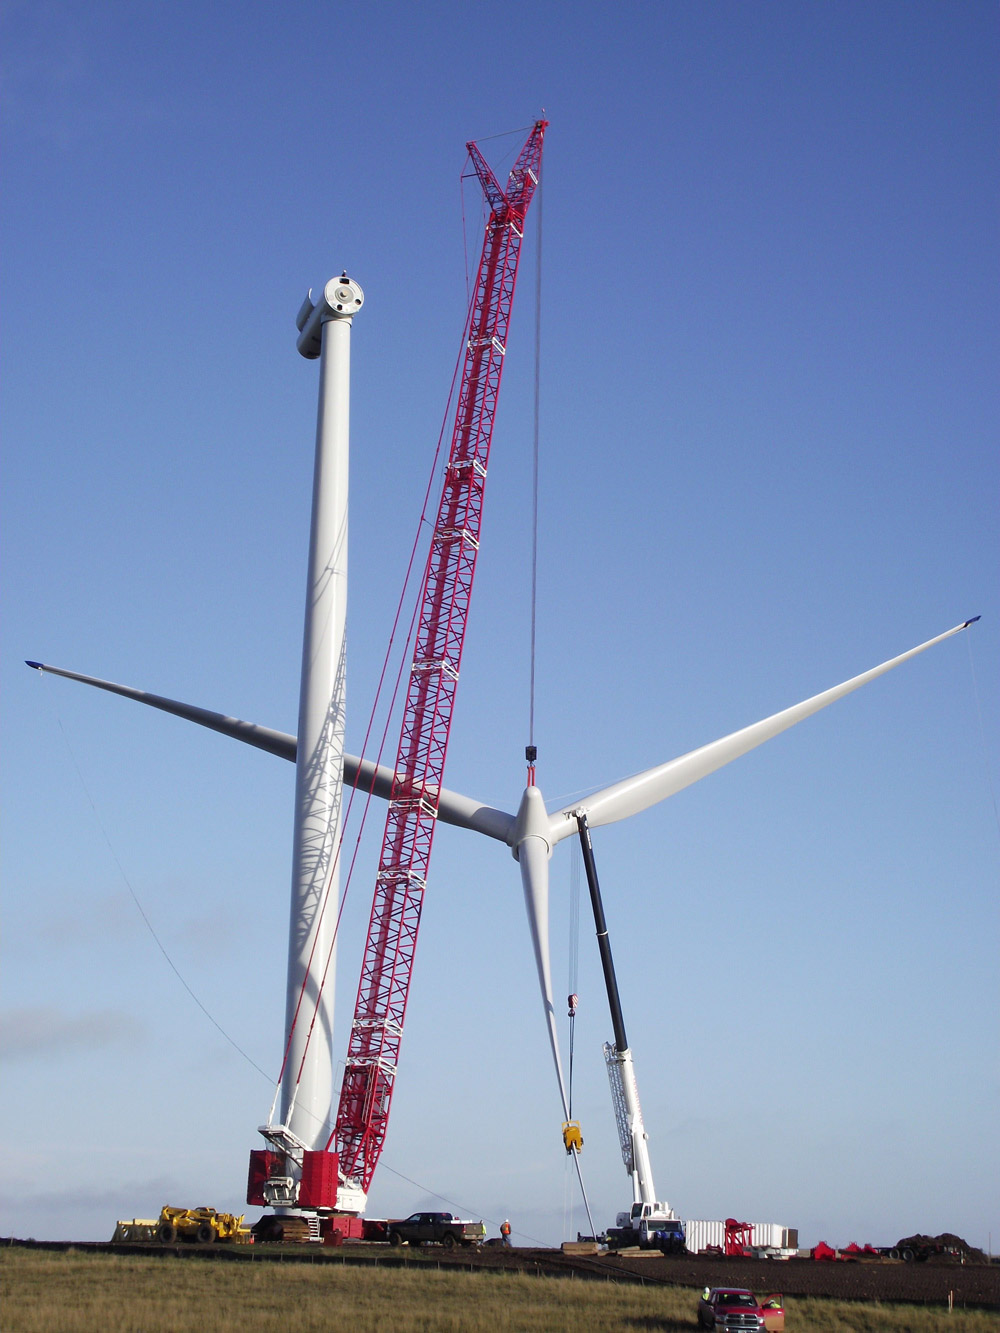 The blades are raised by crane to be attached to the nacelle.